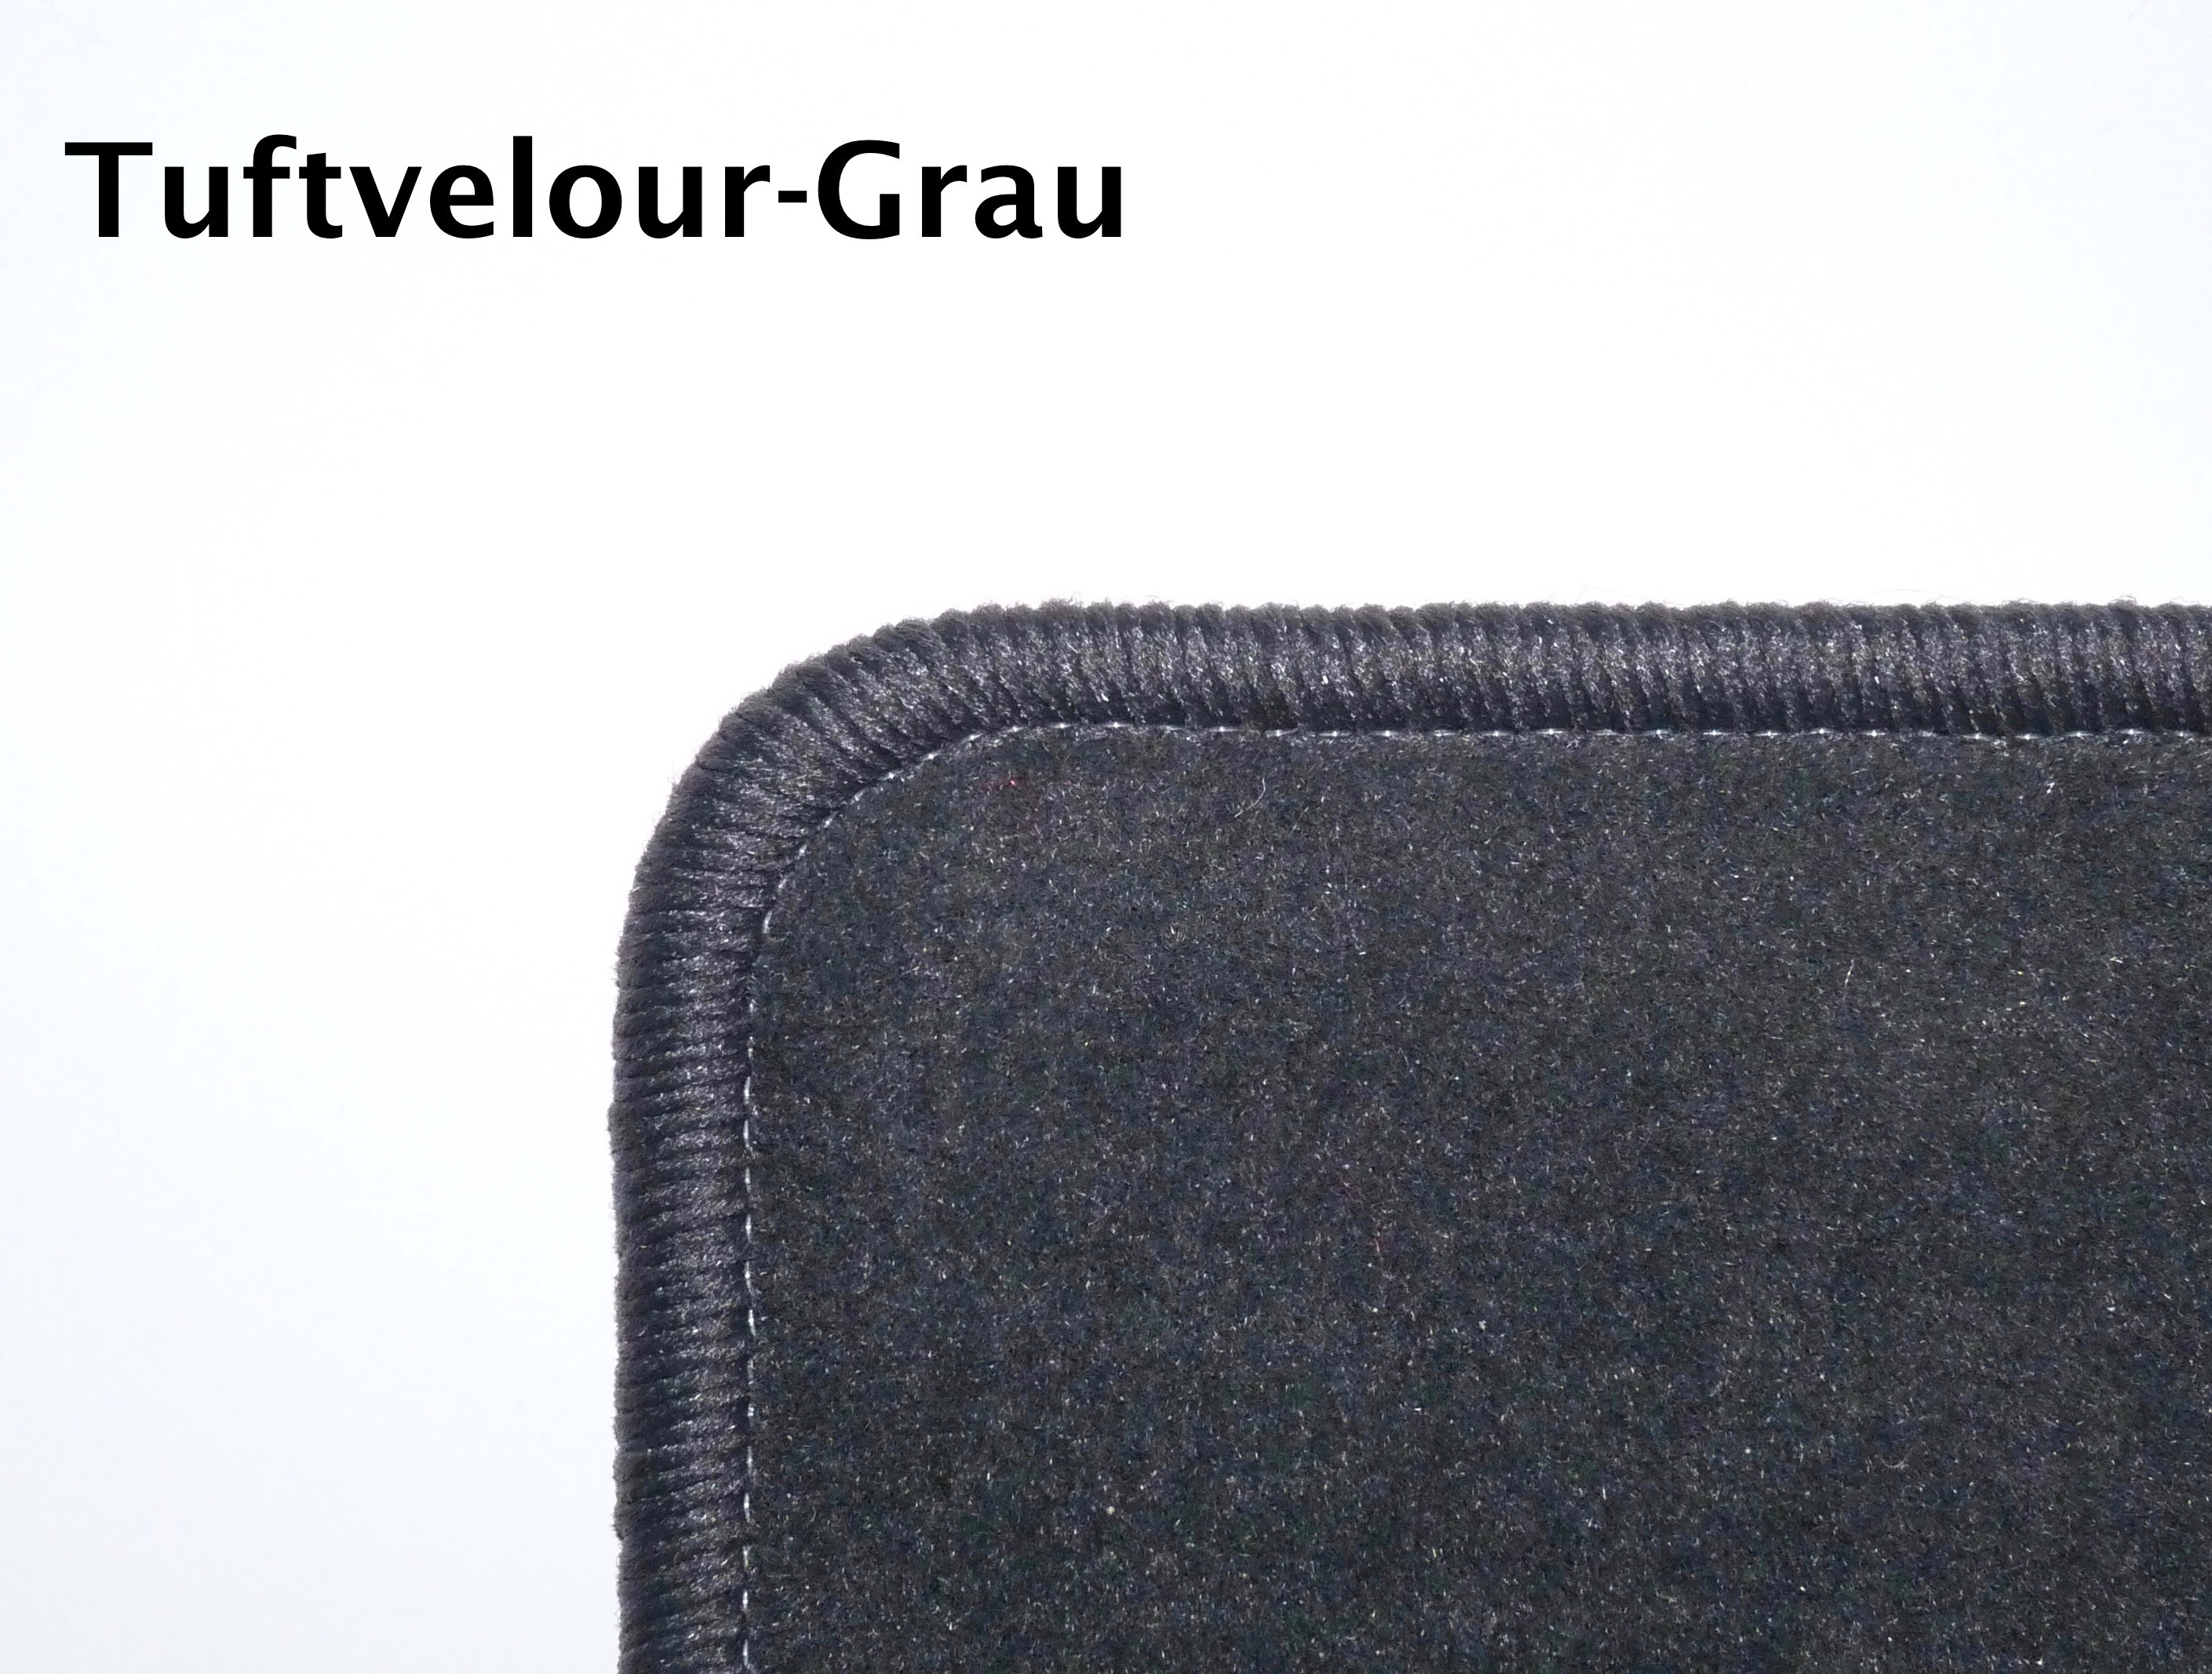 Tuftvelour-Grau